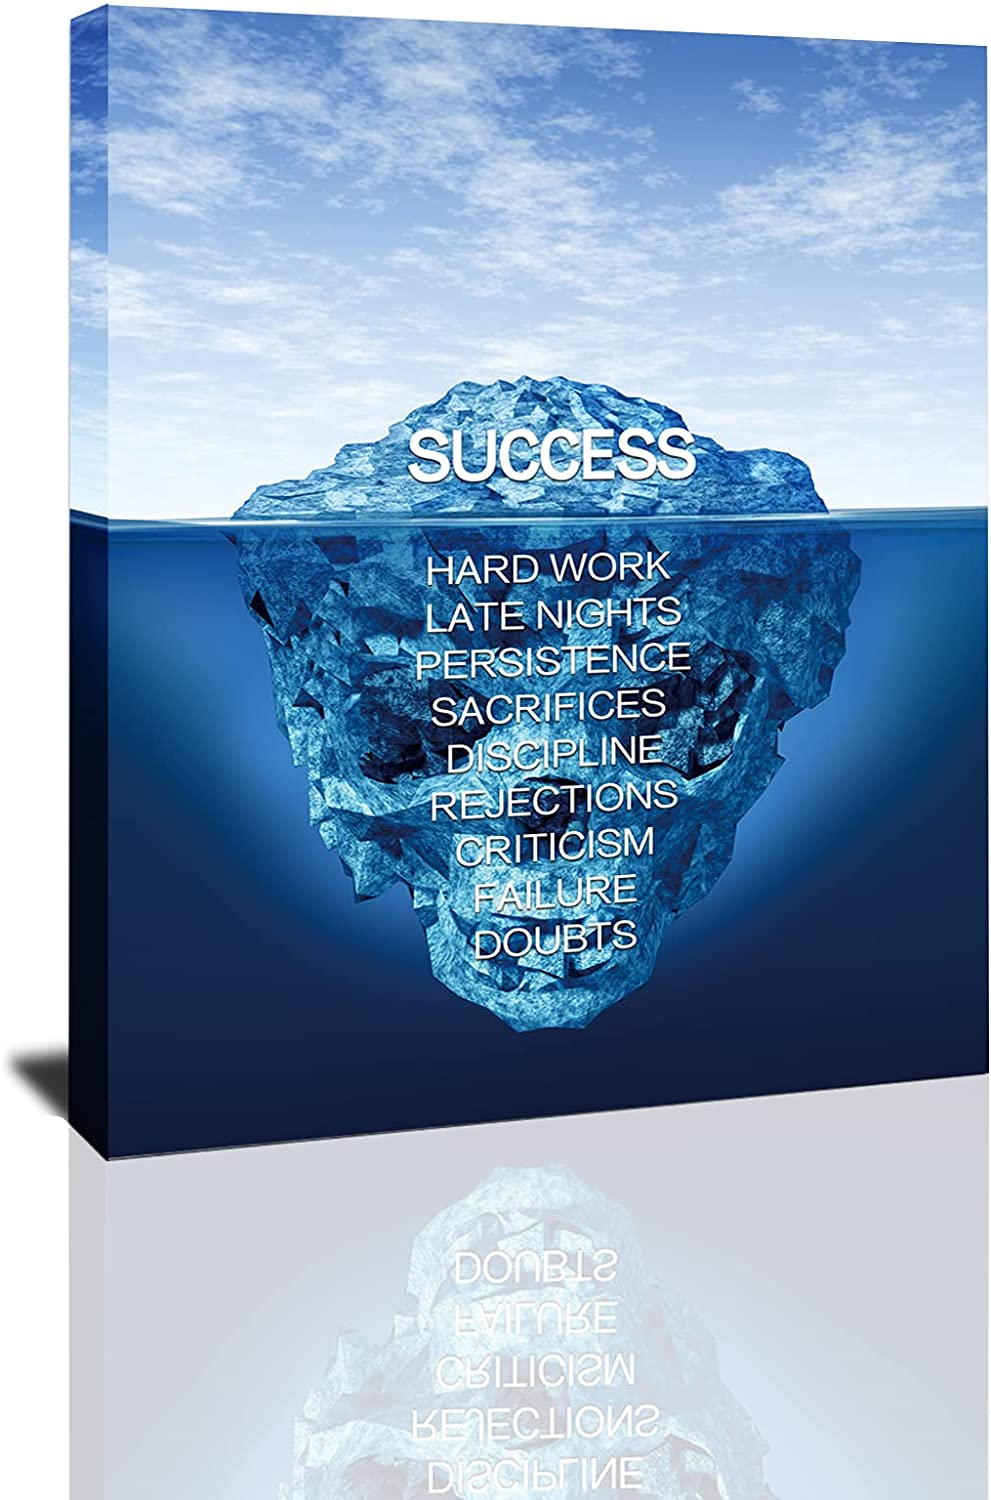 Success Iceberg Wall Art Canvas, Inspirational Success Canvas Wall Art Iceberg Pictures Posters, Motivation Entrepreneur Quotes for Home school Office Artwork Decor Ready to Hang -12x16inch